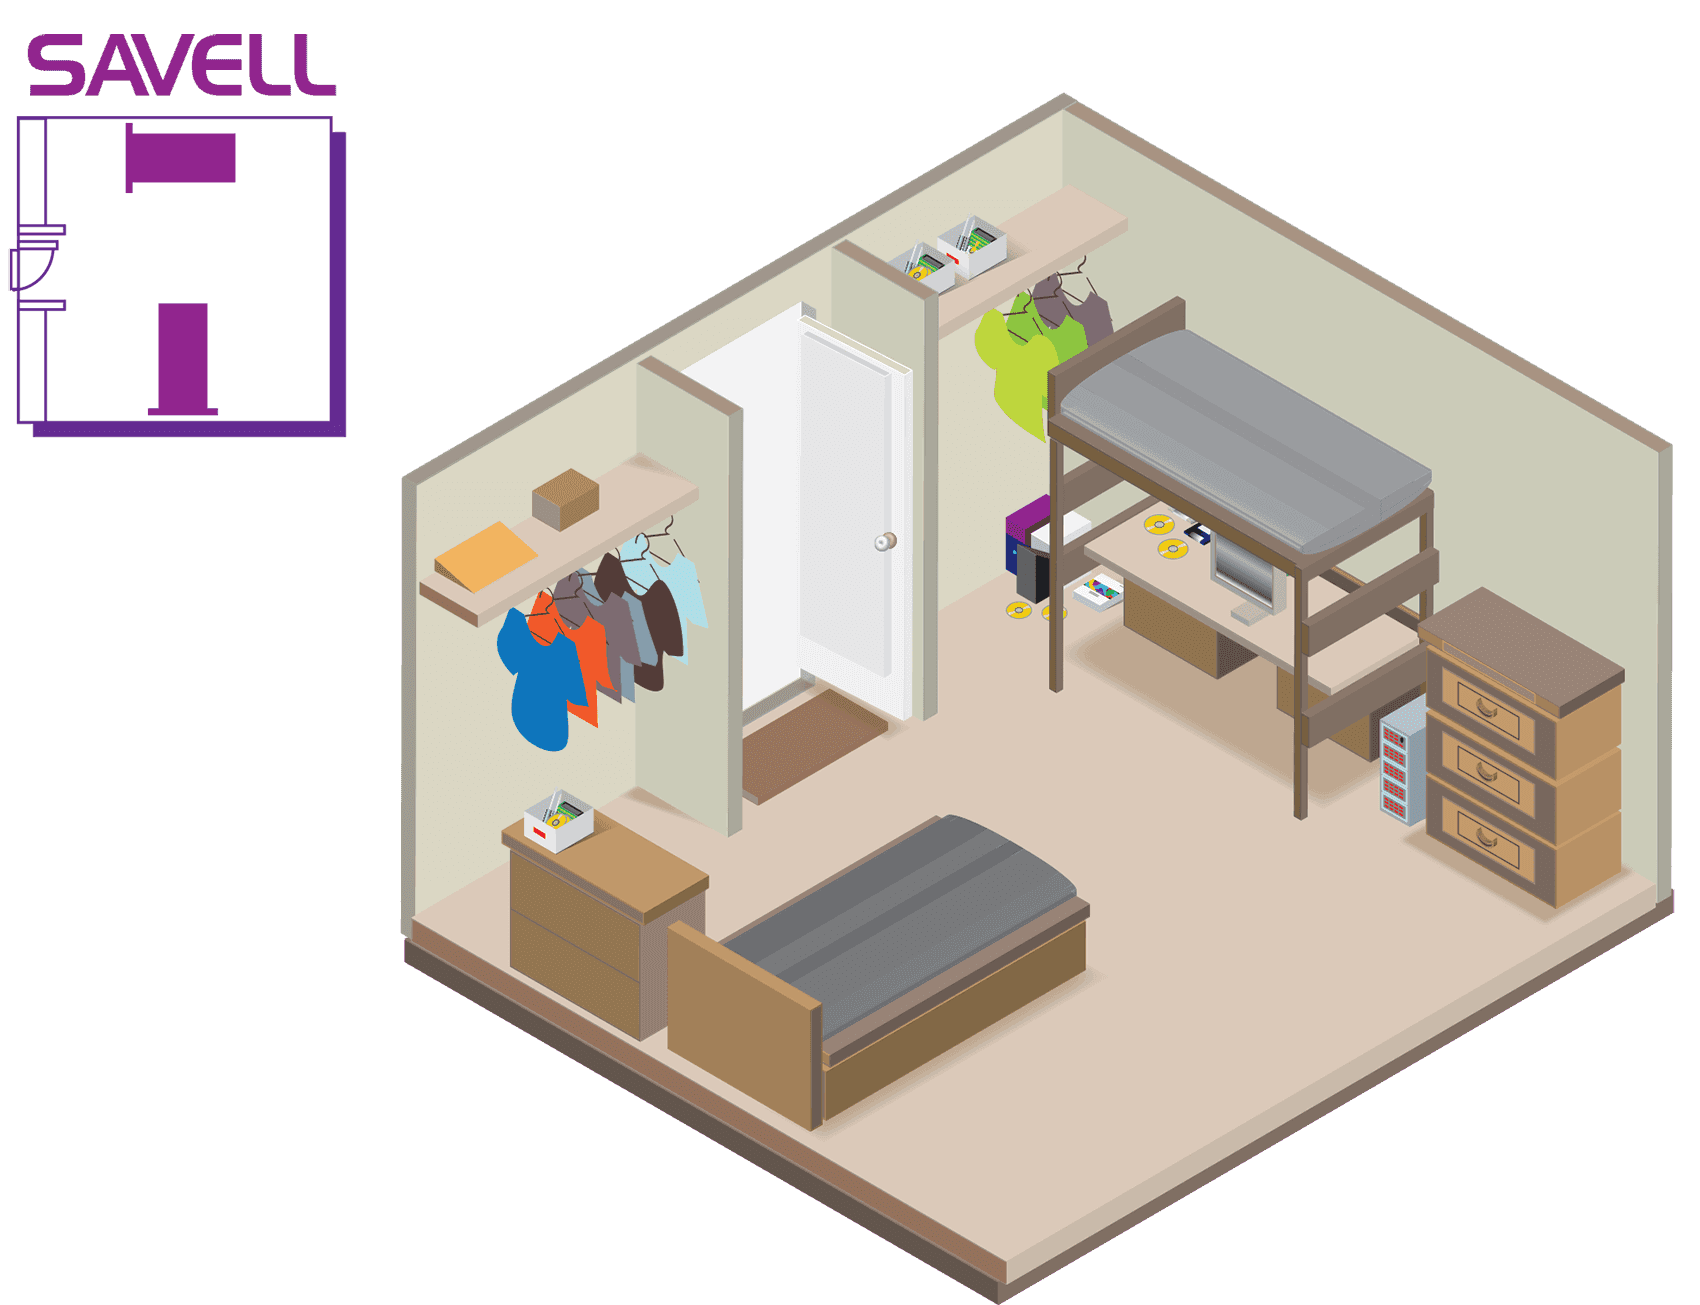 Savell Hall Room Layout